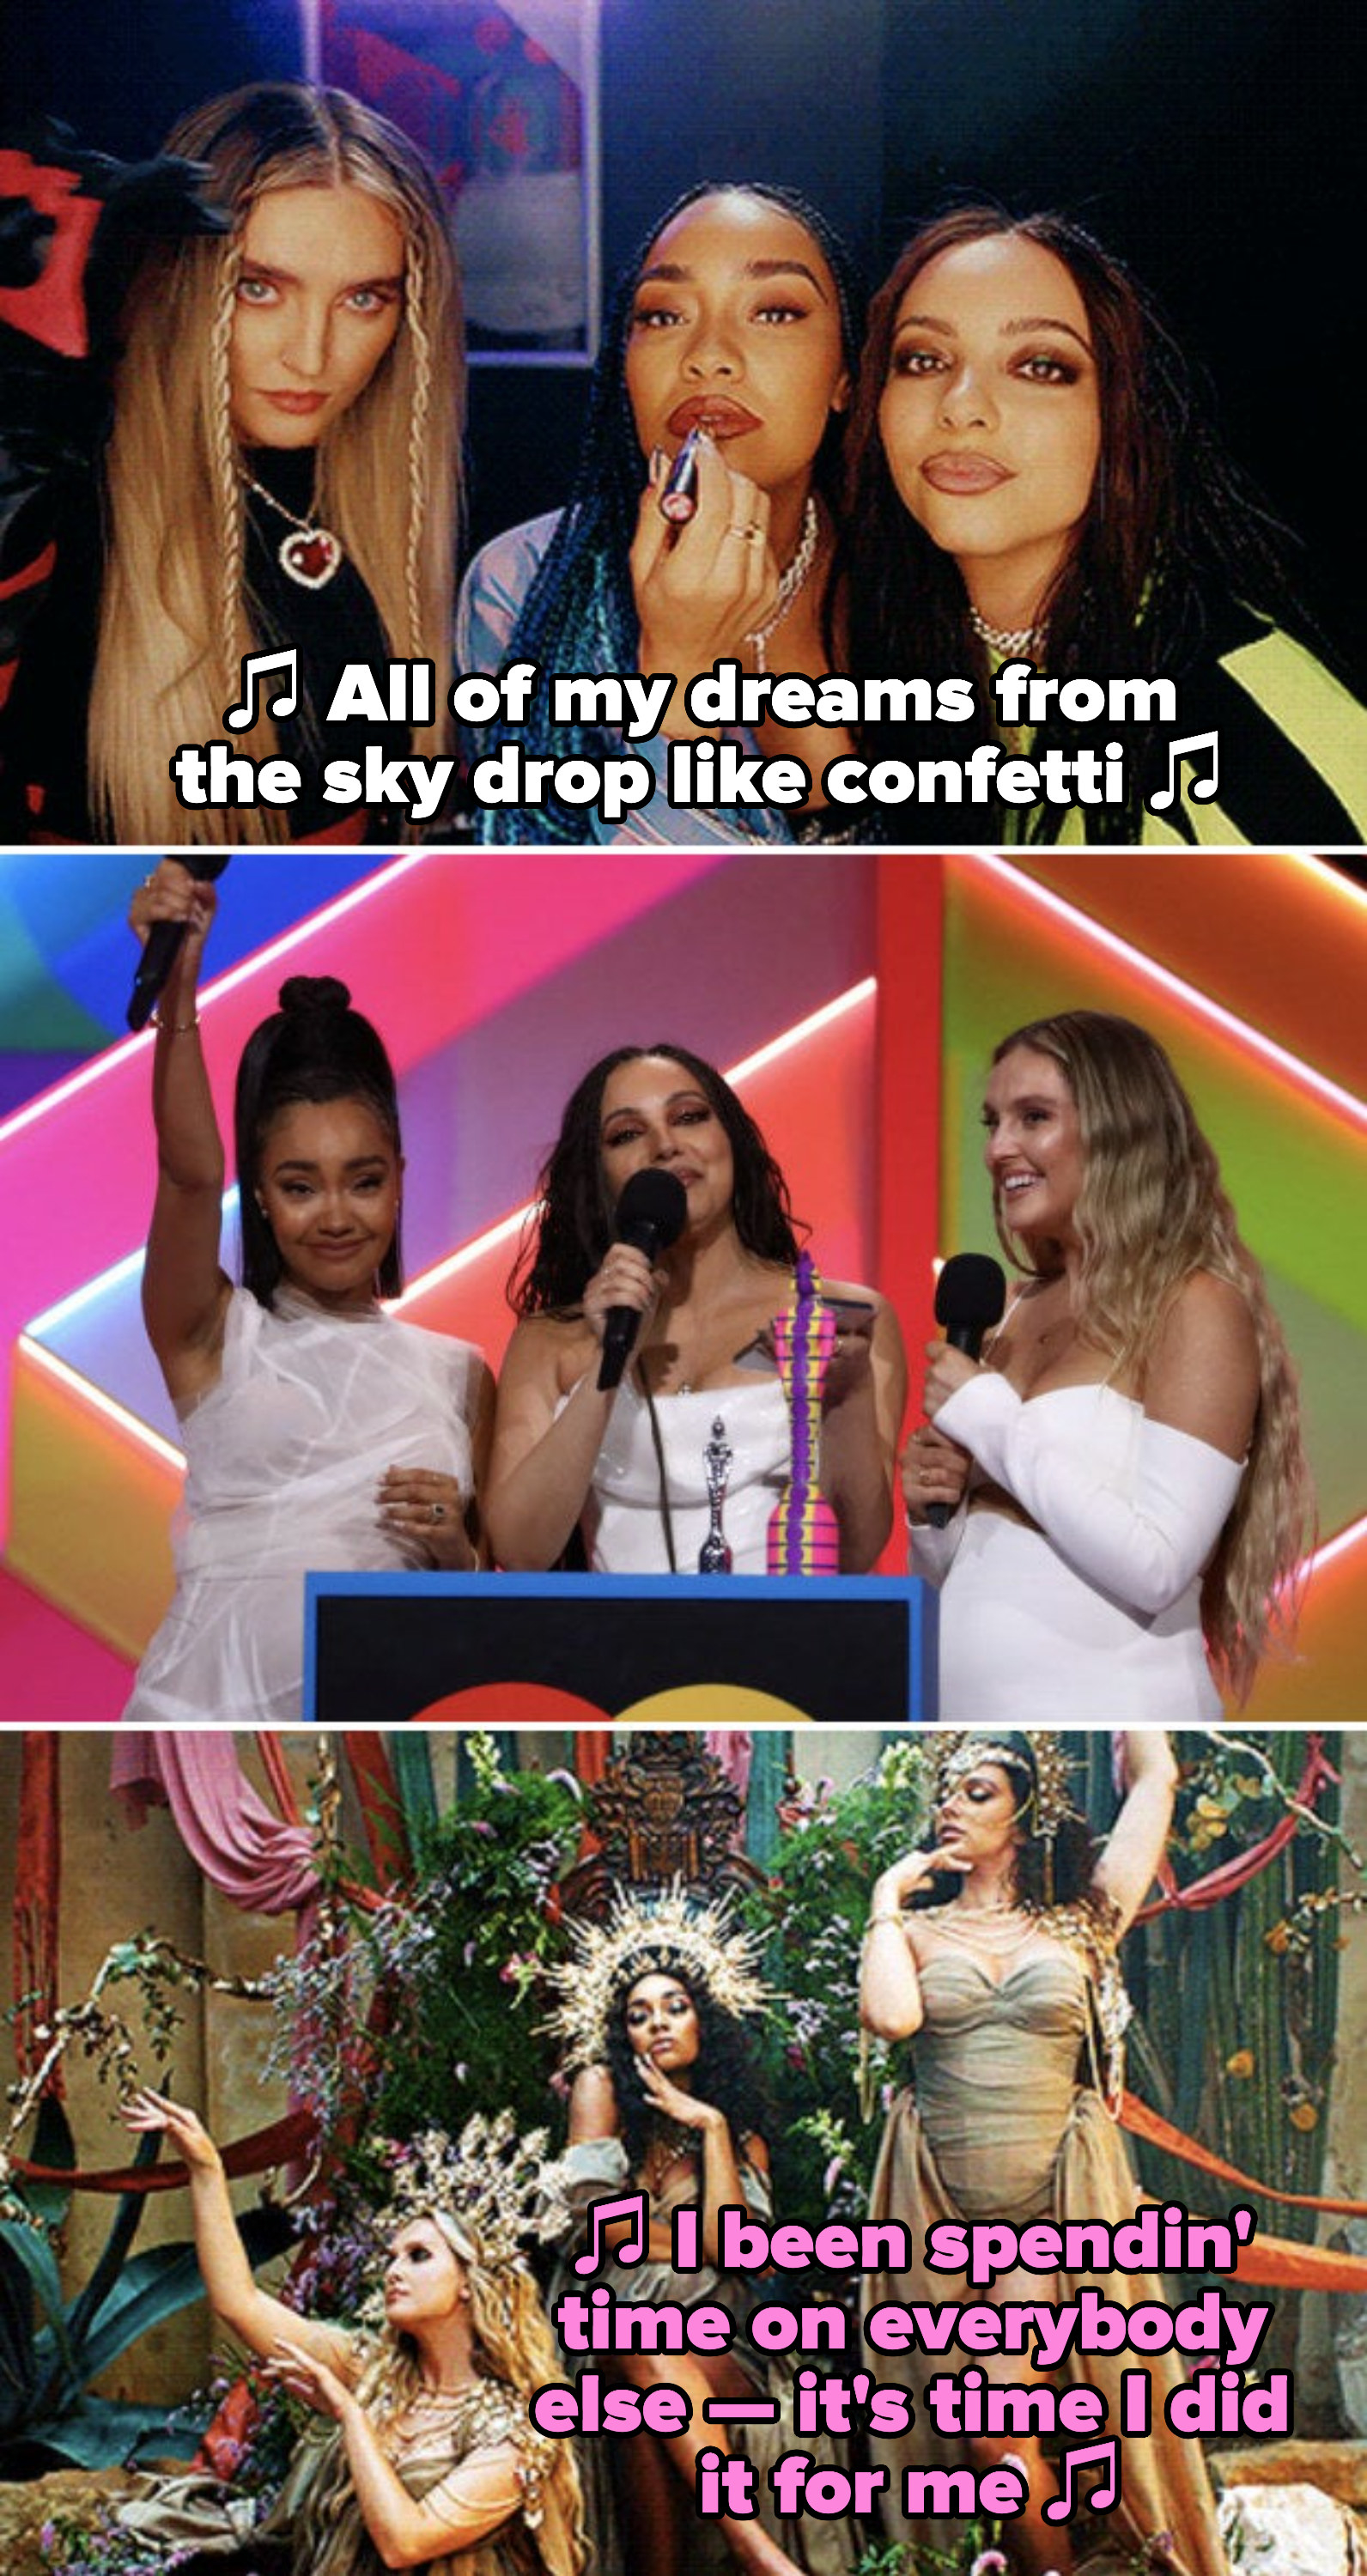 """Little Mix in their """"Confetti"""" music video, singing: """"All of my dreams from the sky drop like confetti;"""" Little Mix at the 2021 BRIT Awards; Little Mix in their """"Love (Sweet Love)"""" music video, singing: """"I been spendin' time on everybody else"""""""